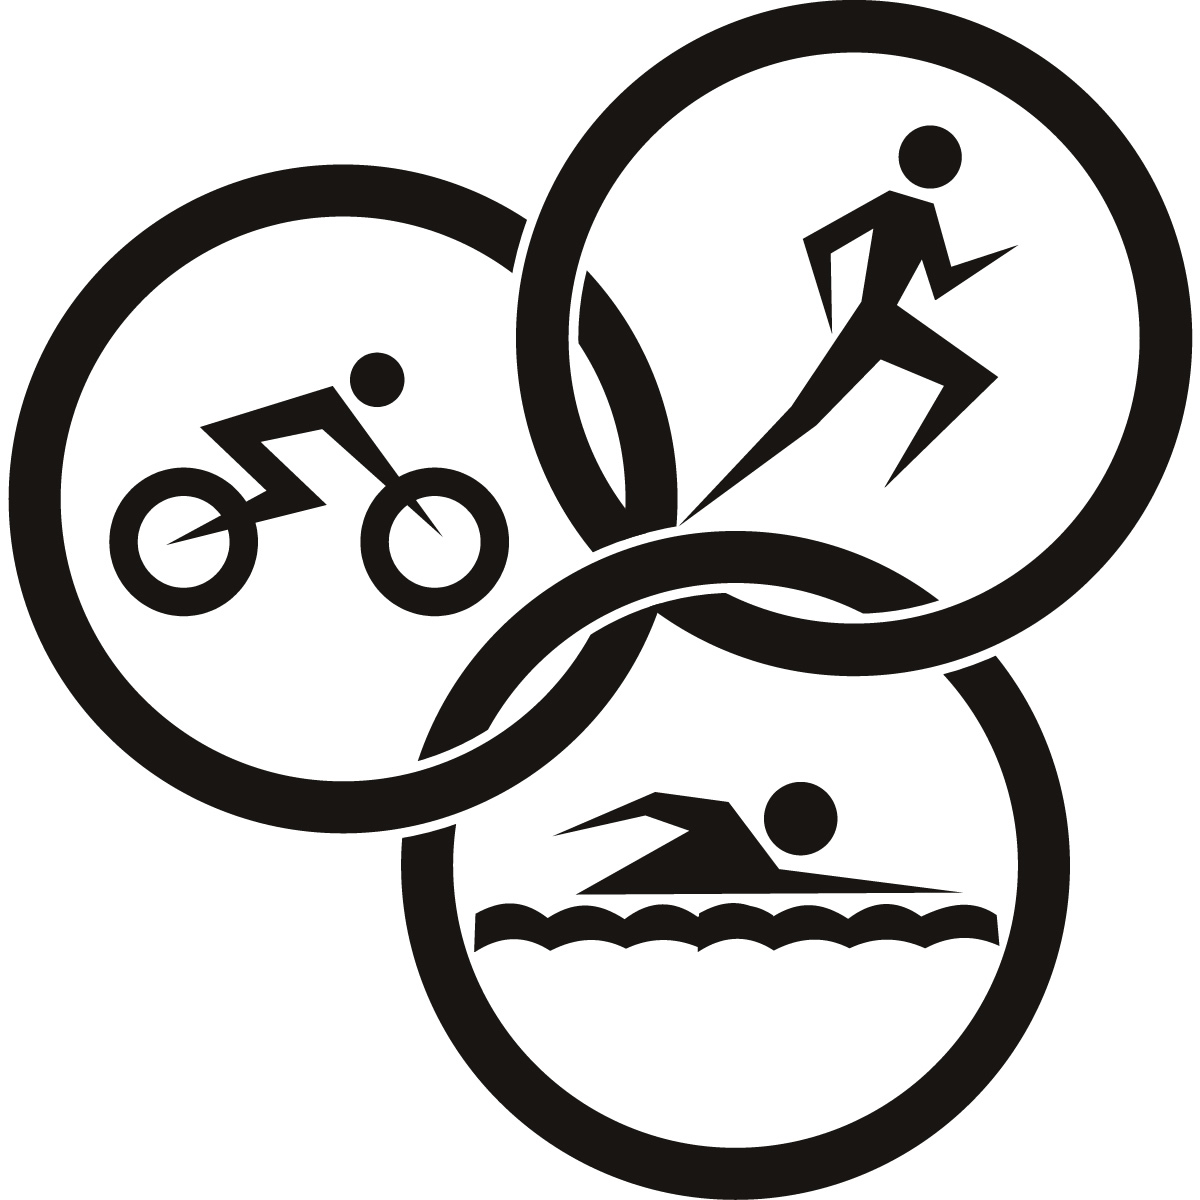 15 triathlon free cliparts that you can download to you computer and ...